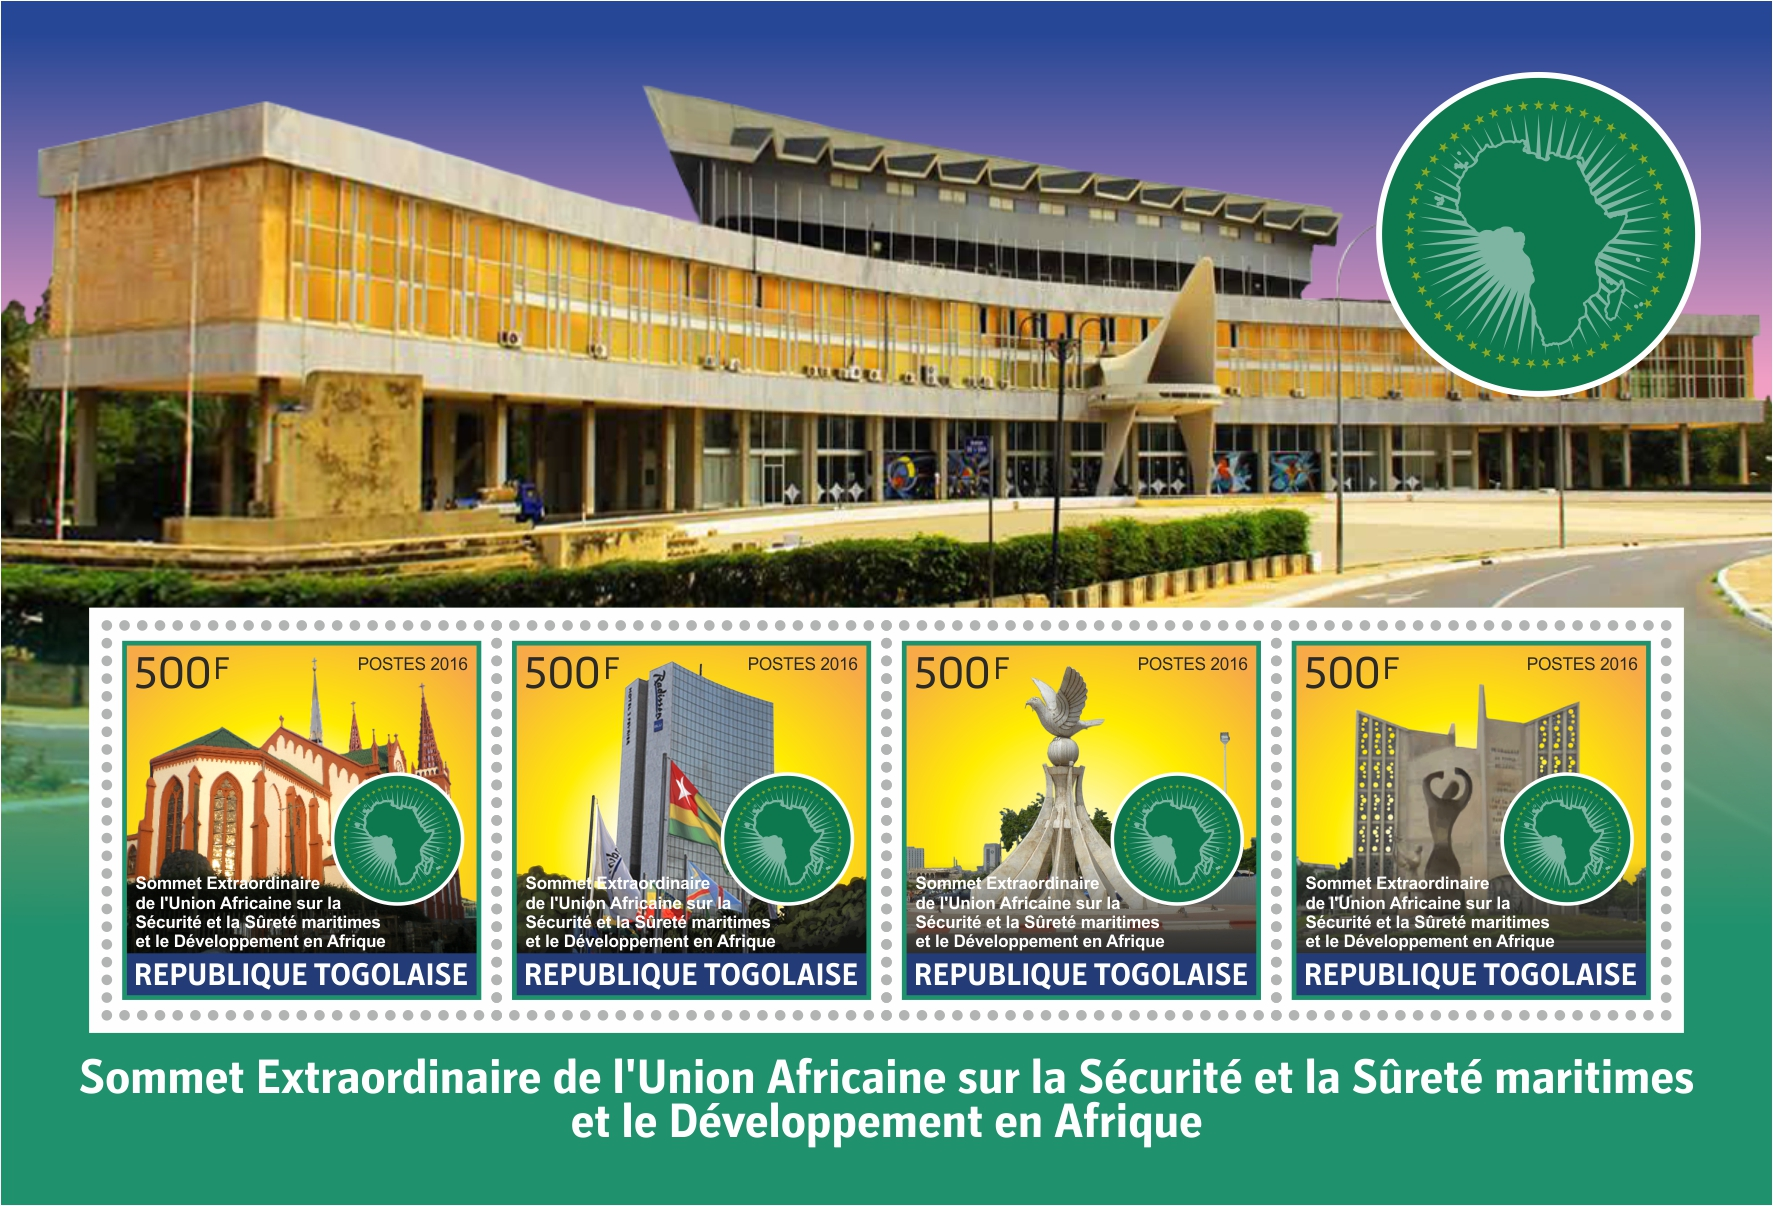 Sommet de Lome 4v - Issue of Togo postage stamps